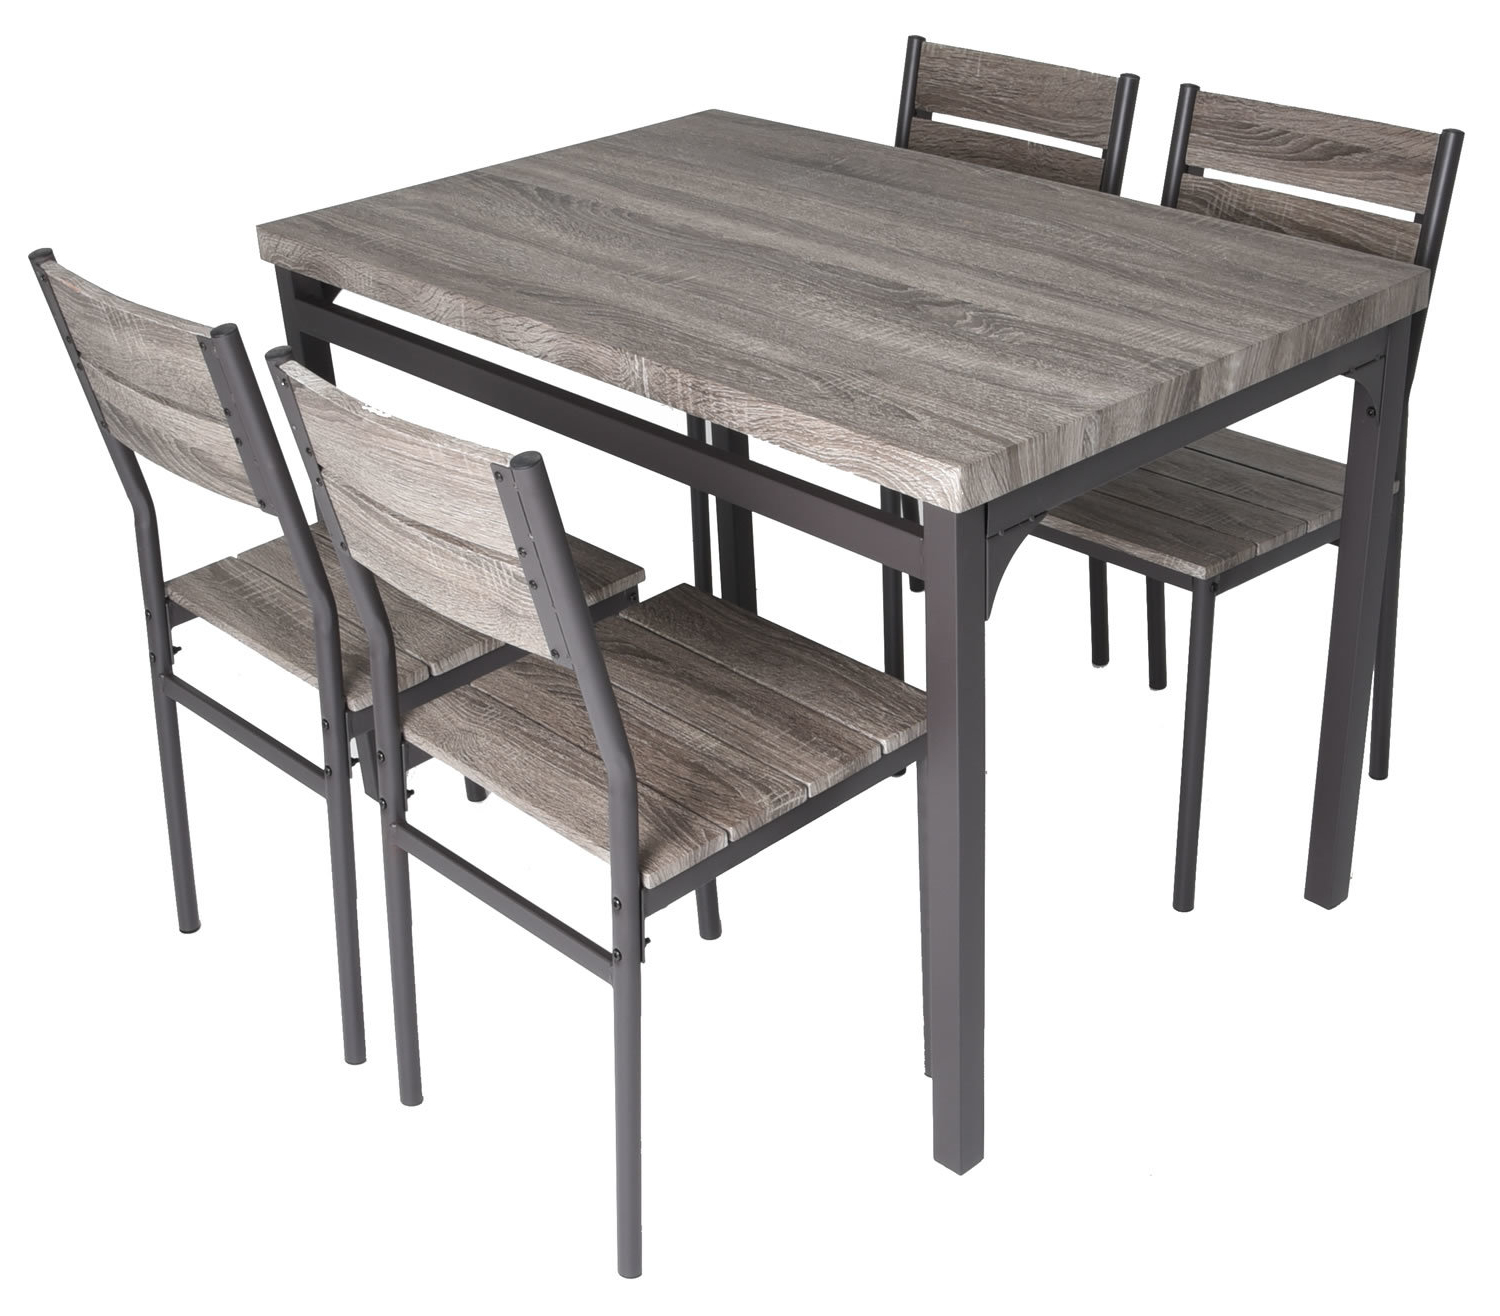 Conover 5 Piece Dining Sets Throughout Favorite Gracie Oaks Emmeline 5 Piece Breakfast Nook Dining Set & Reviews (View 9 of 25)